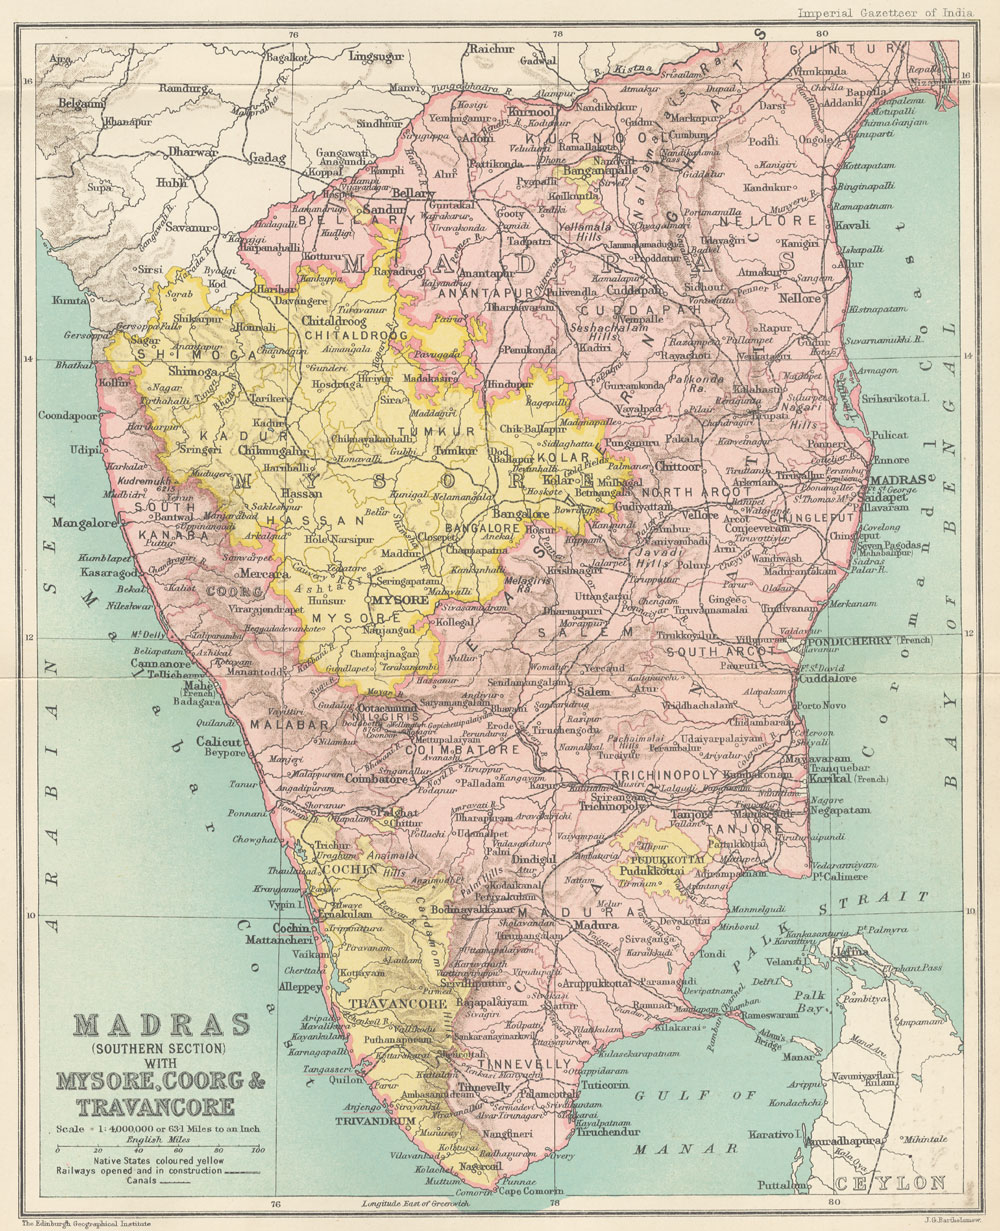 Madras_Southern_Section.jpg